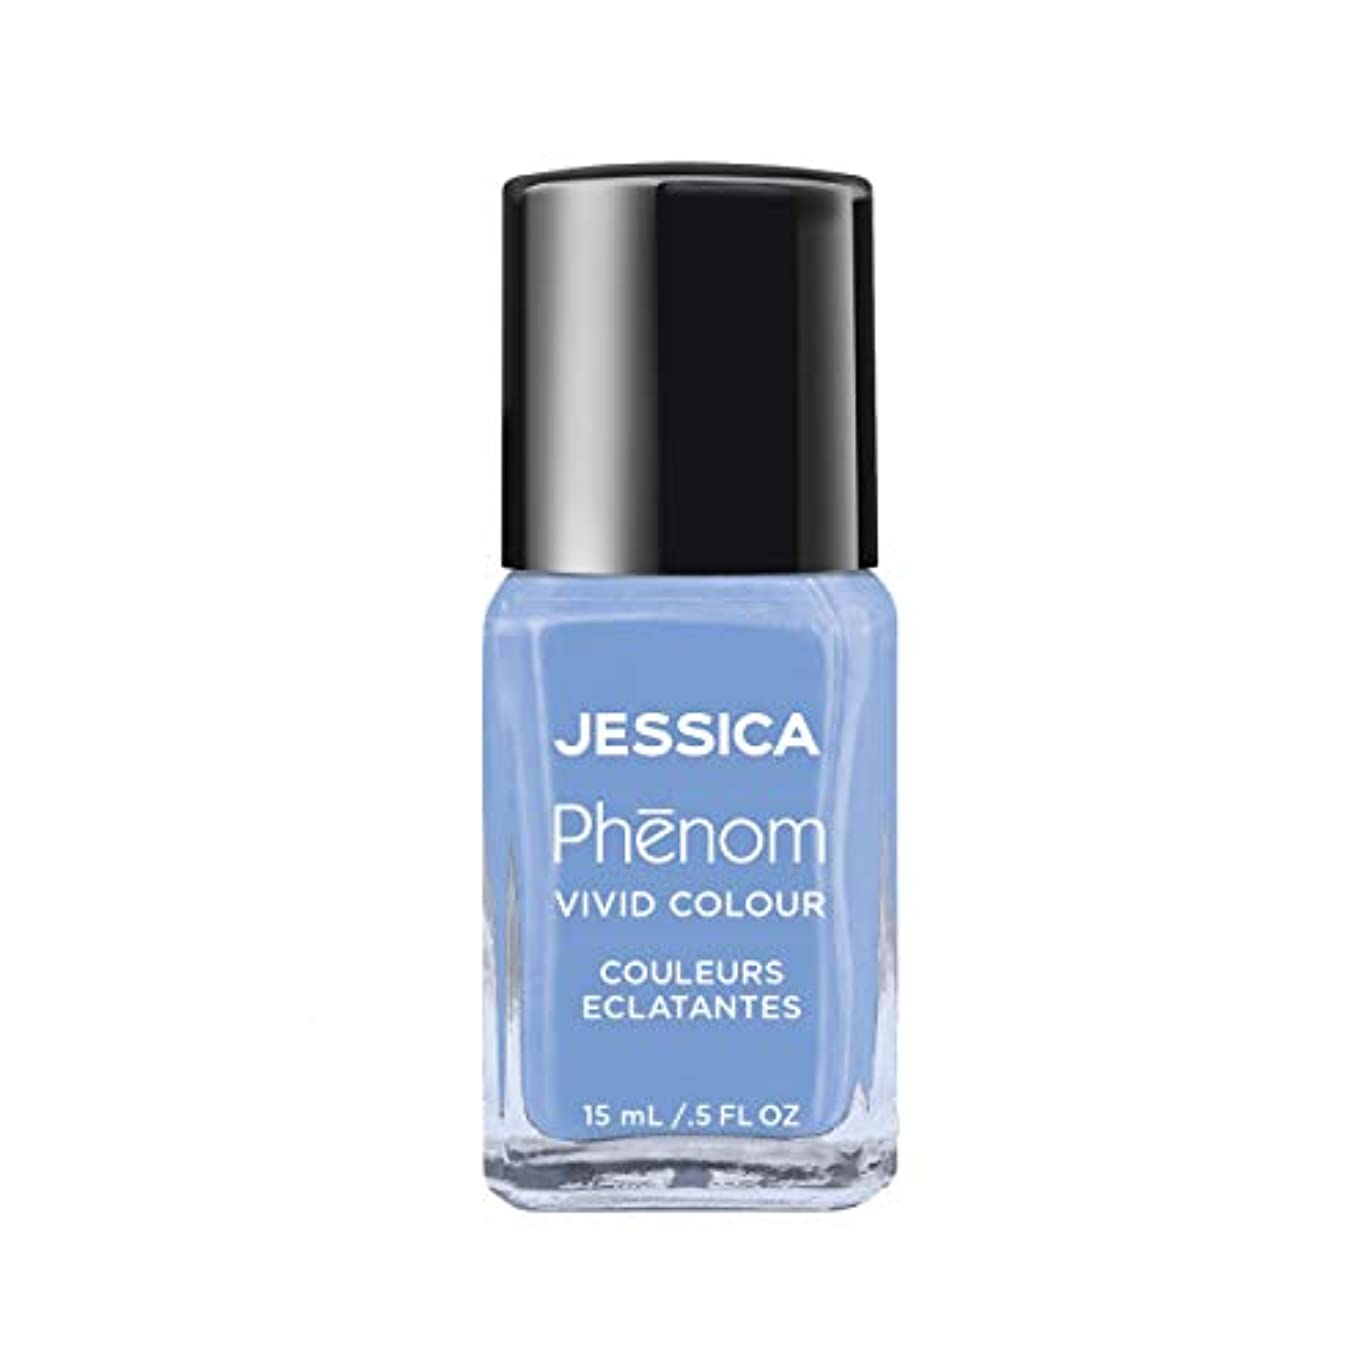 Jessica Phenom Nail Lacquer - Copacabana Beach - 15ml/0.5oz